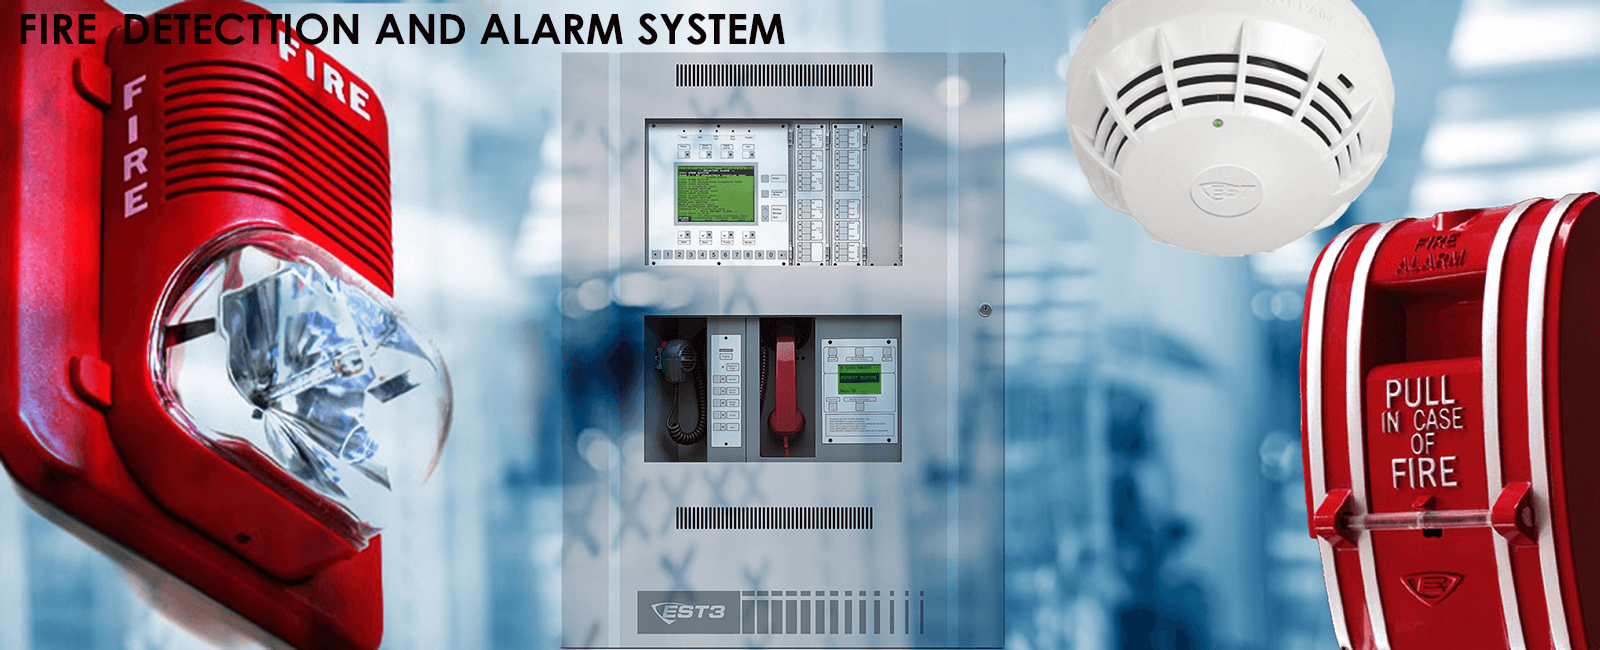 Cctv Camera Manila Alarm And Security System Philippines Where Smokedetectoralarmcircuitpng First Option Electronics Phils Inc